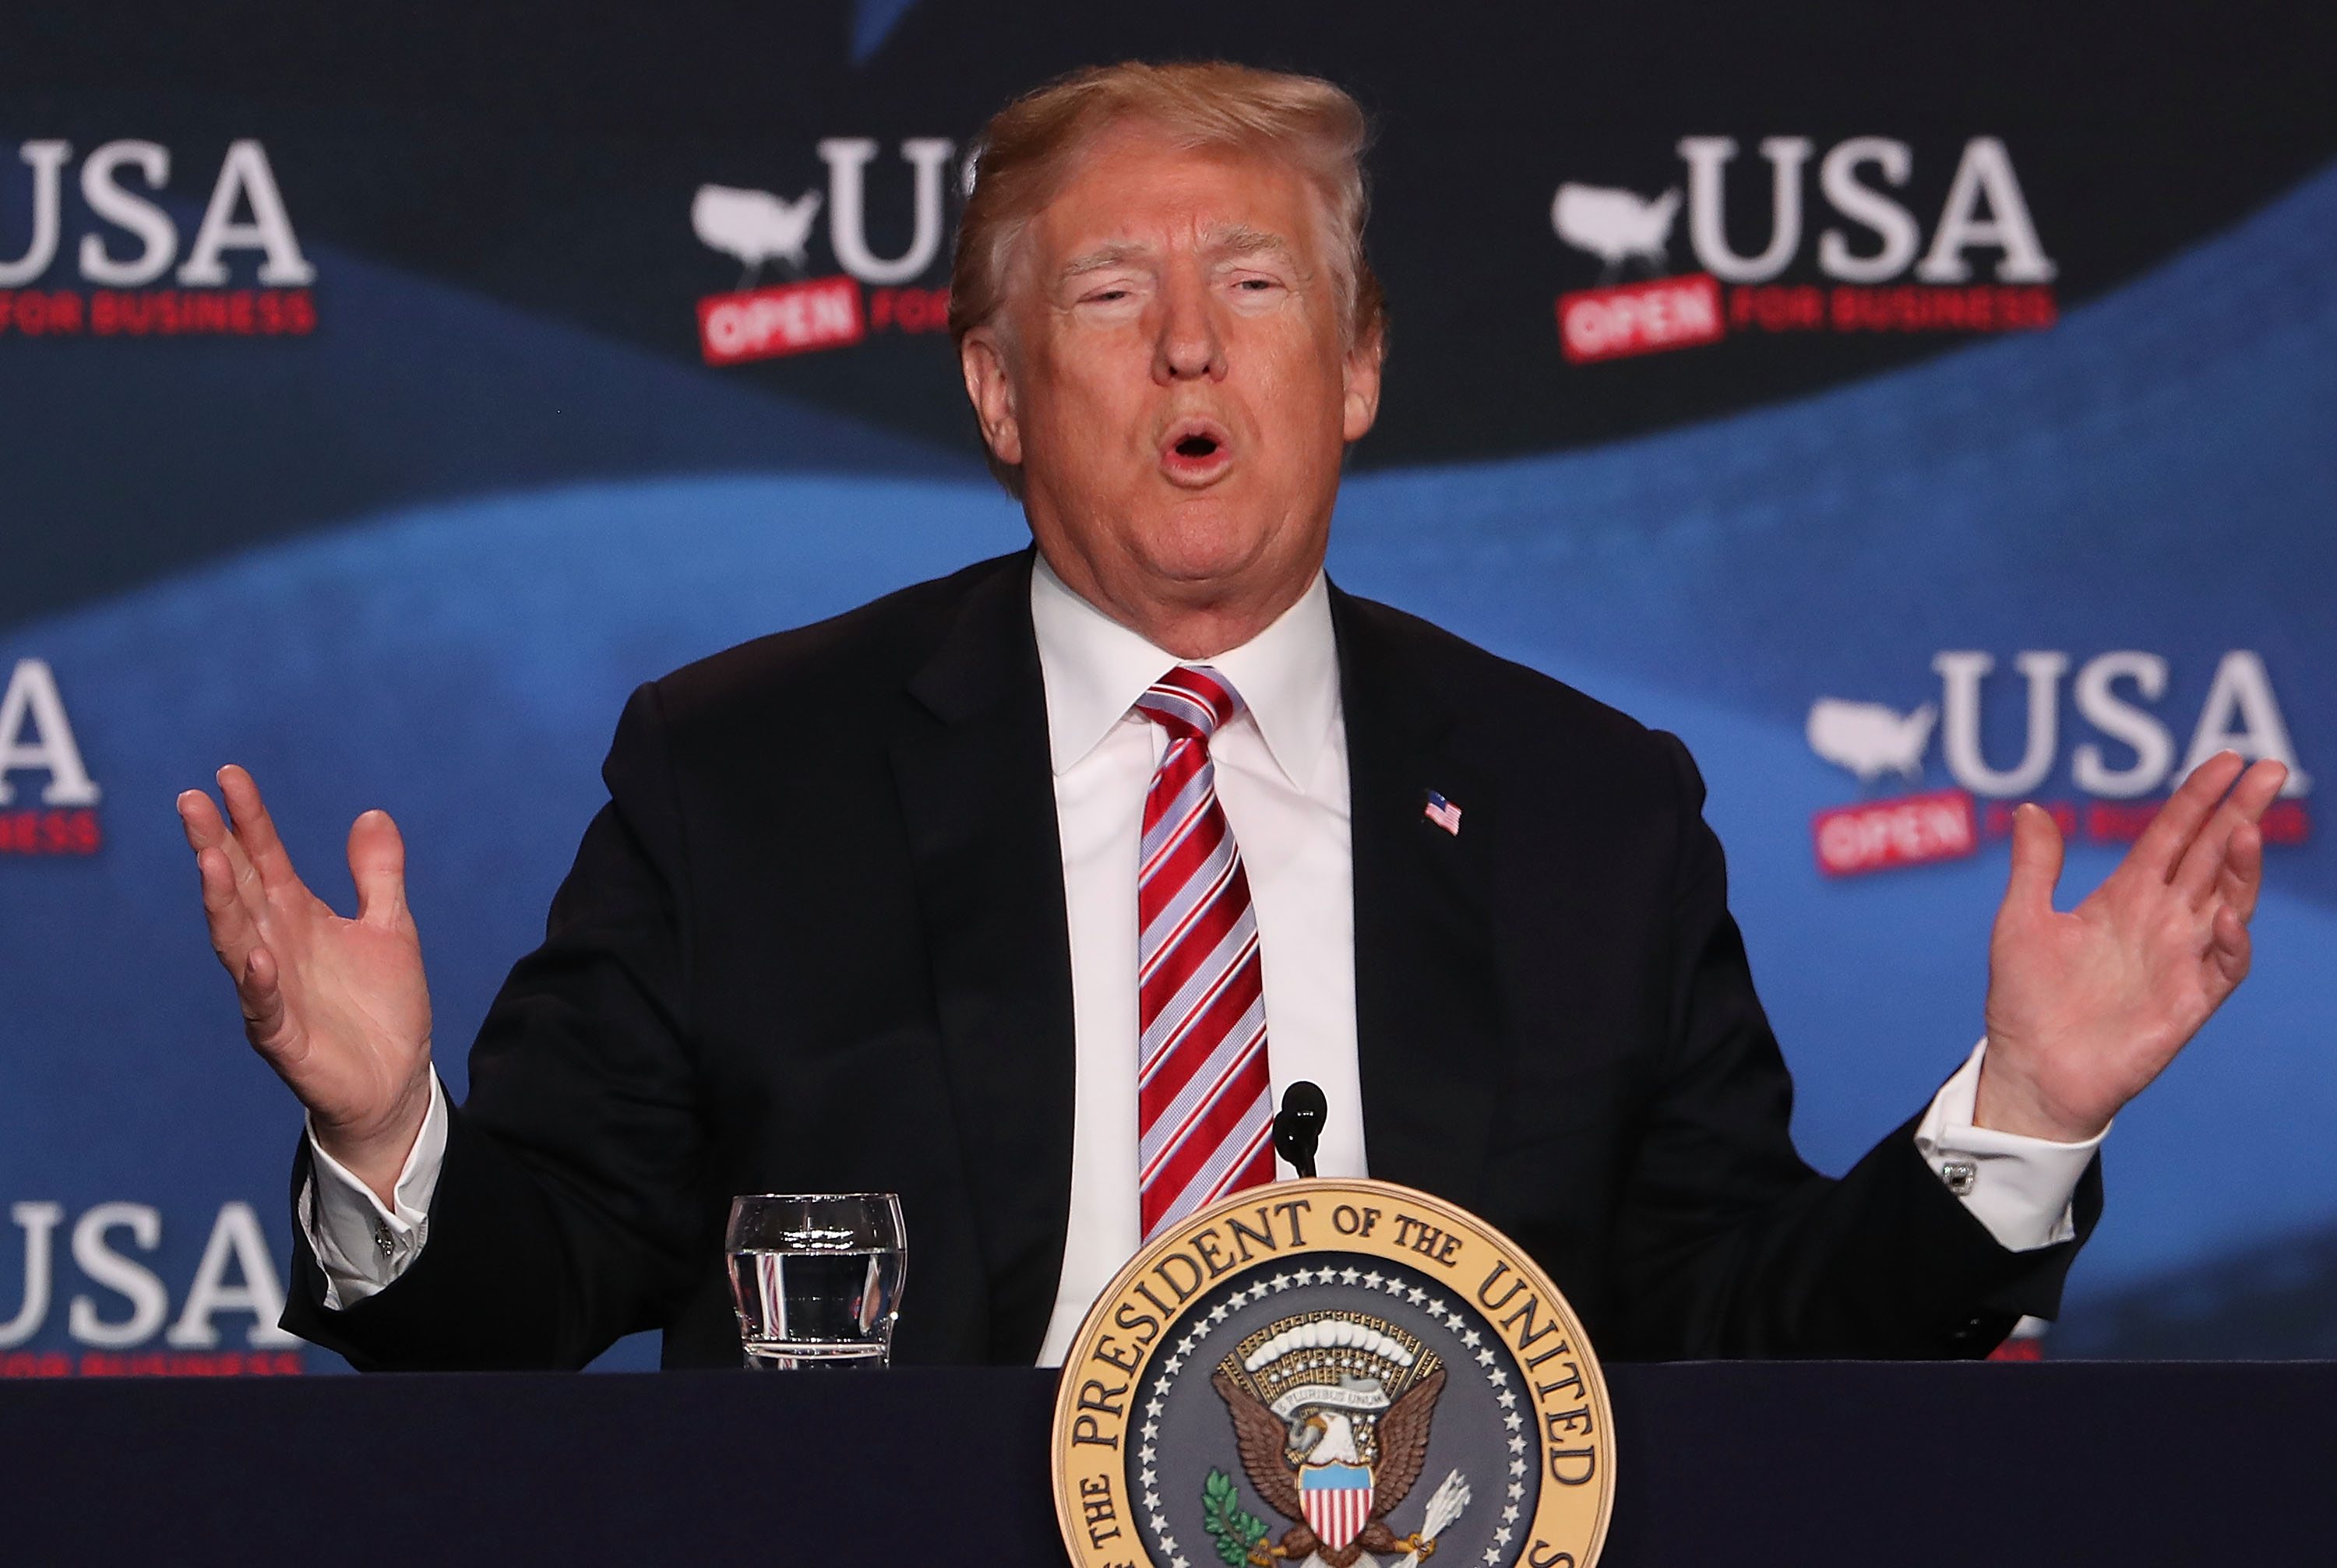 President Trump Holds Roundtable Discussion On Tax Reform In Hialeah, Florida